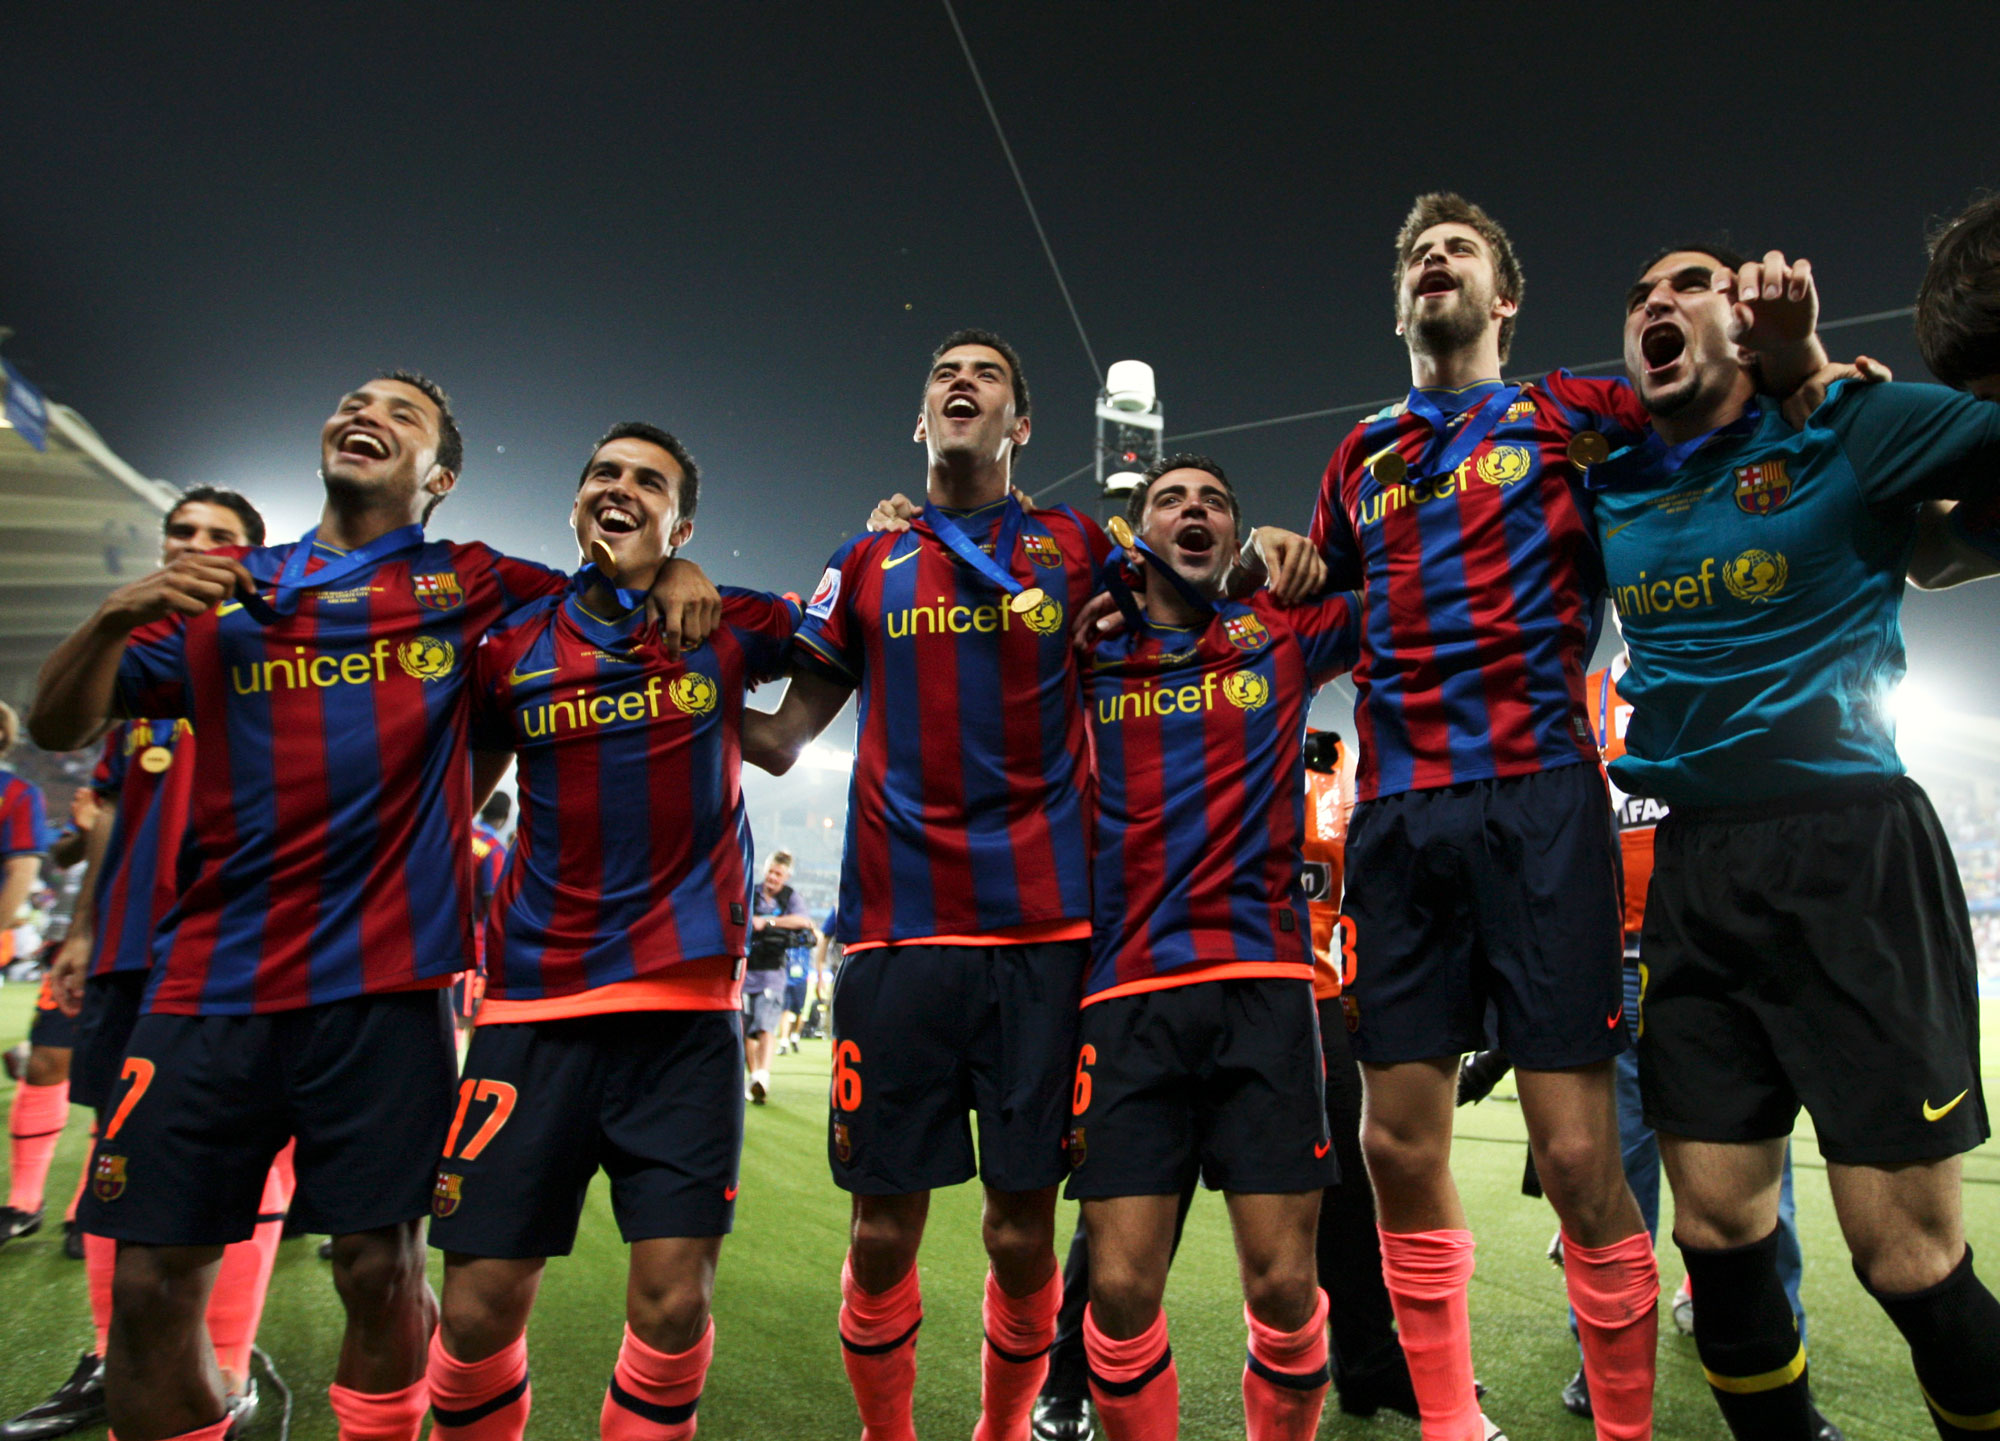 Network science reveals the secrets of the world's best soccer team